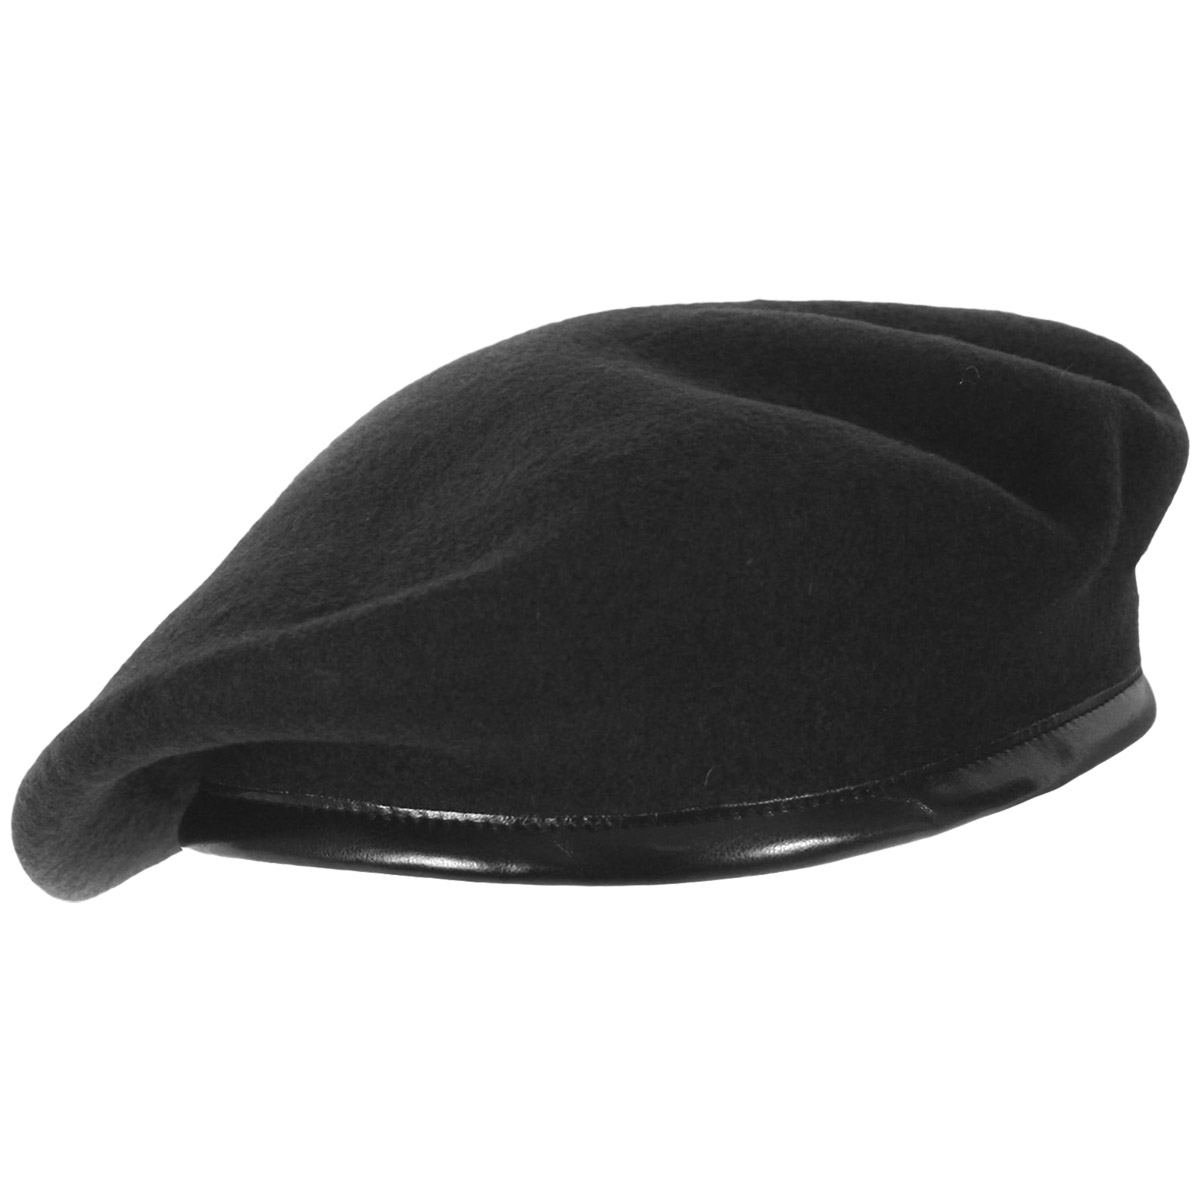 Details about Pentagon French Style Army Tactical Beret Classic Mens Military  Hat Unisex Black f66525d22fd